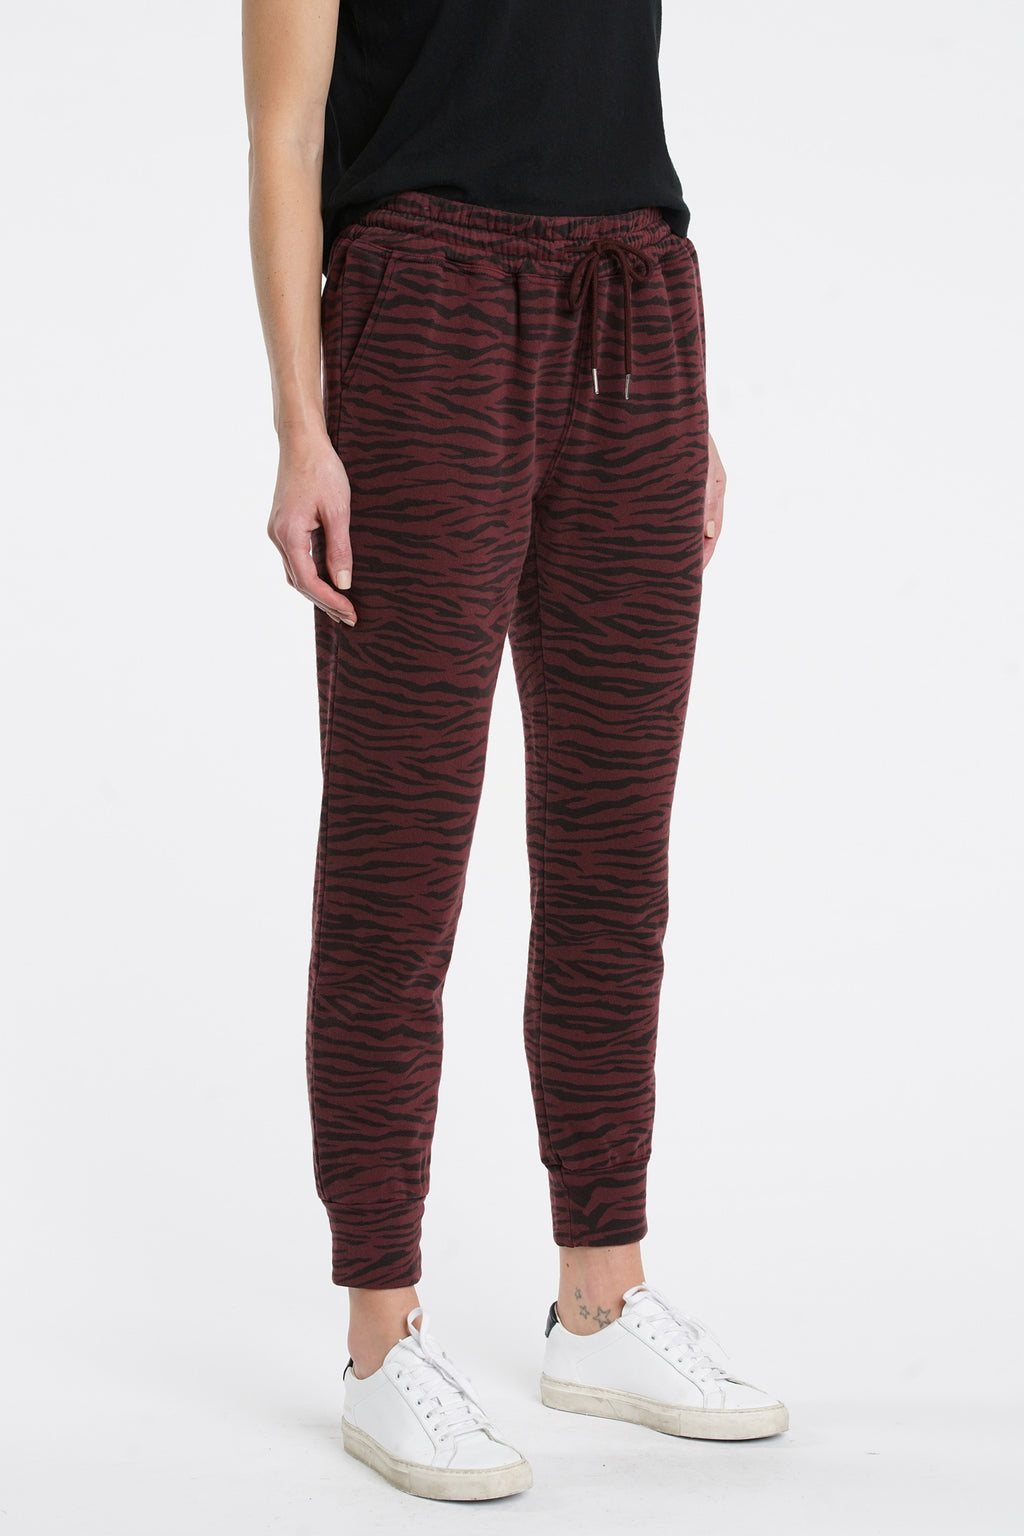 Alessa Slim Straight Leg Sweat-pant - Black Cherry Tiger